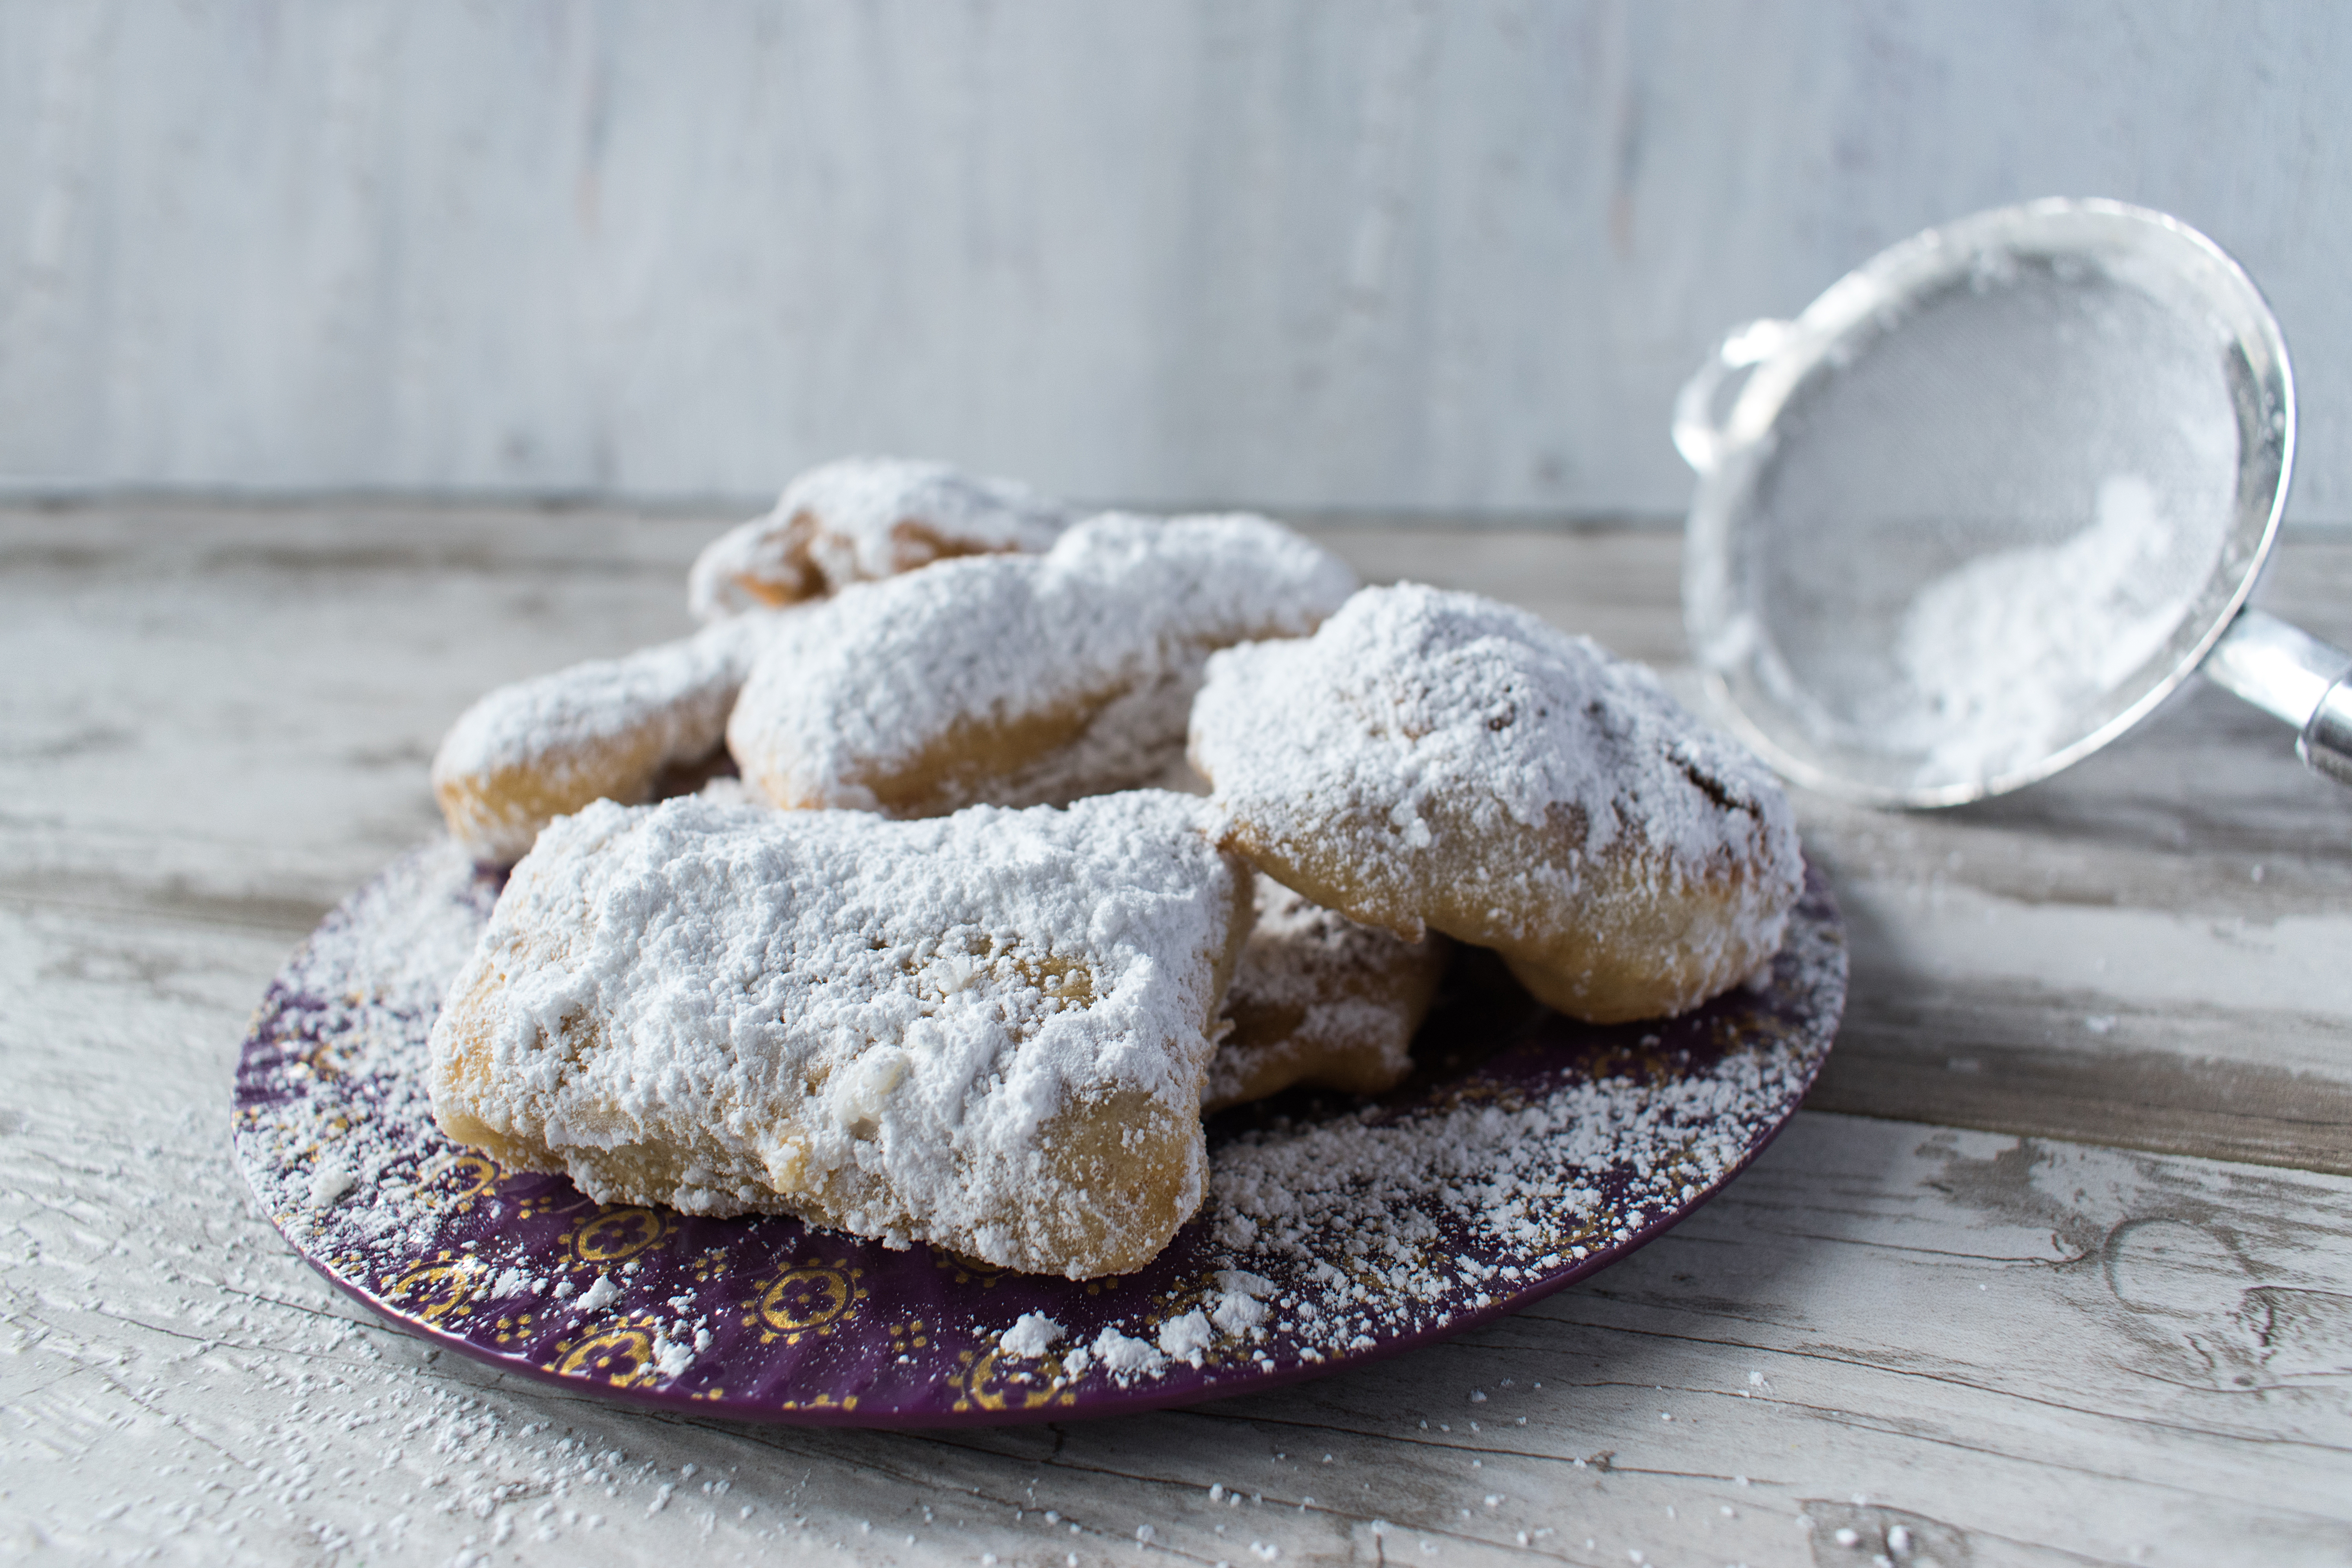 A plate of fluffy beignets covered in powdered sugar.